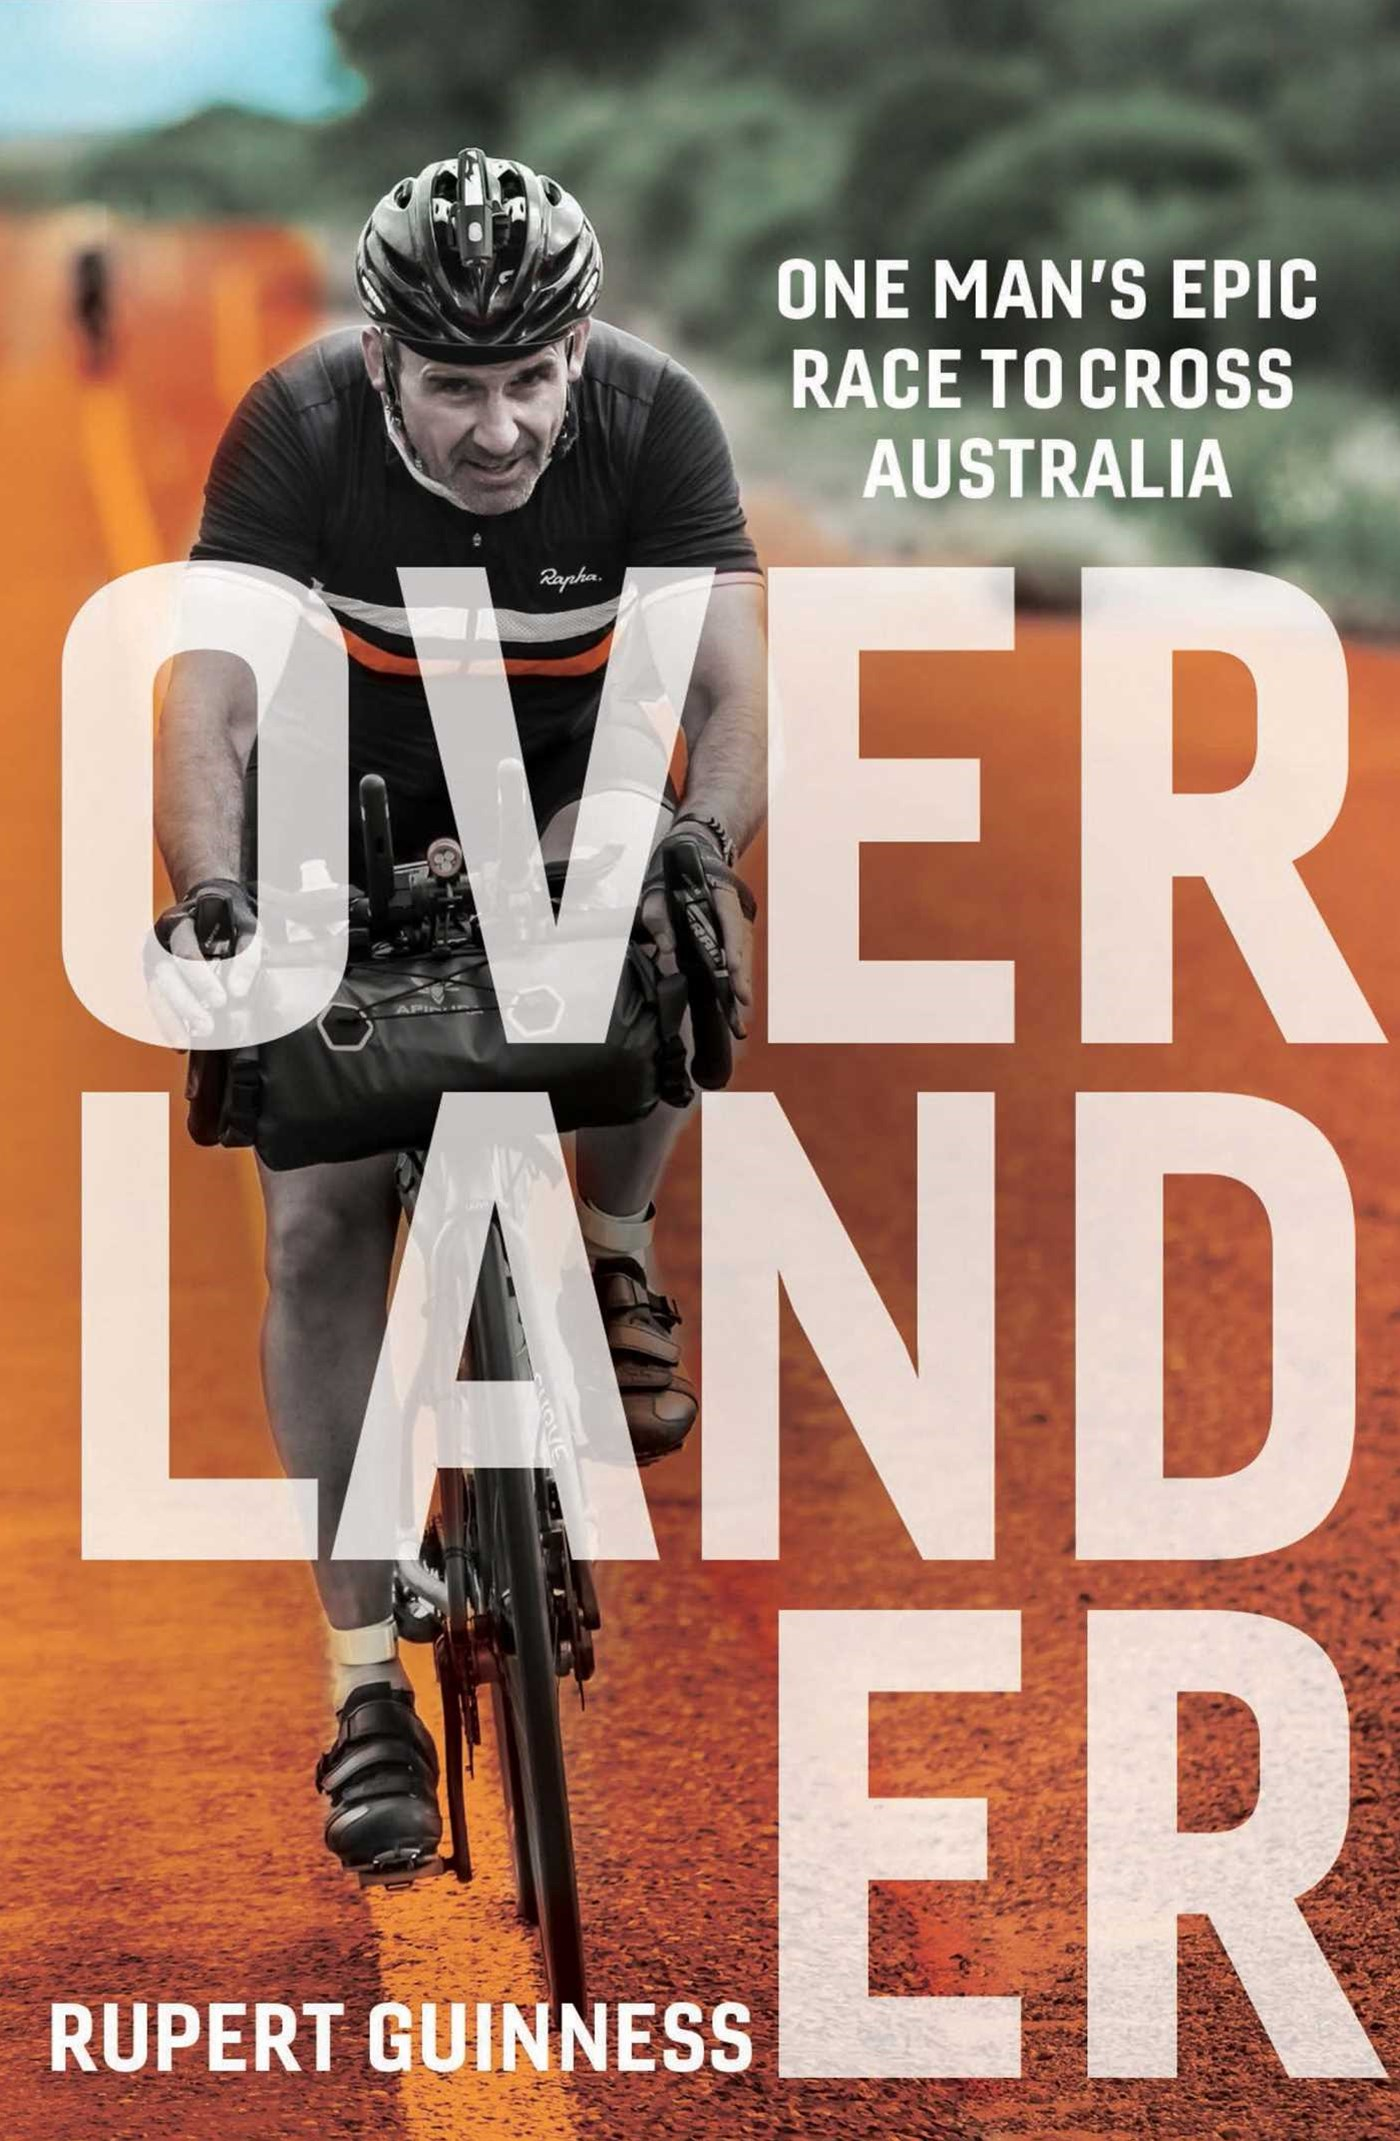 Overlander: One man's epic race to cross Australia